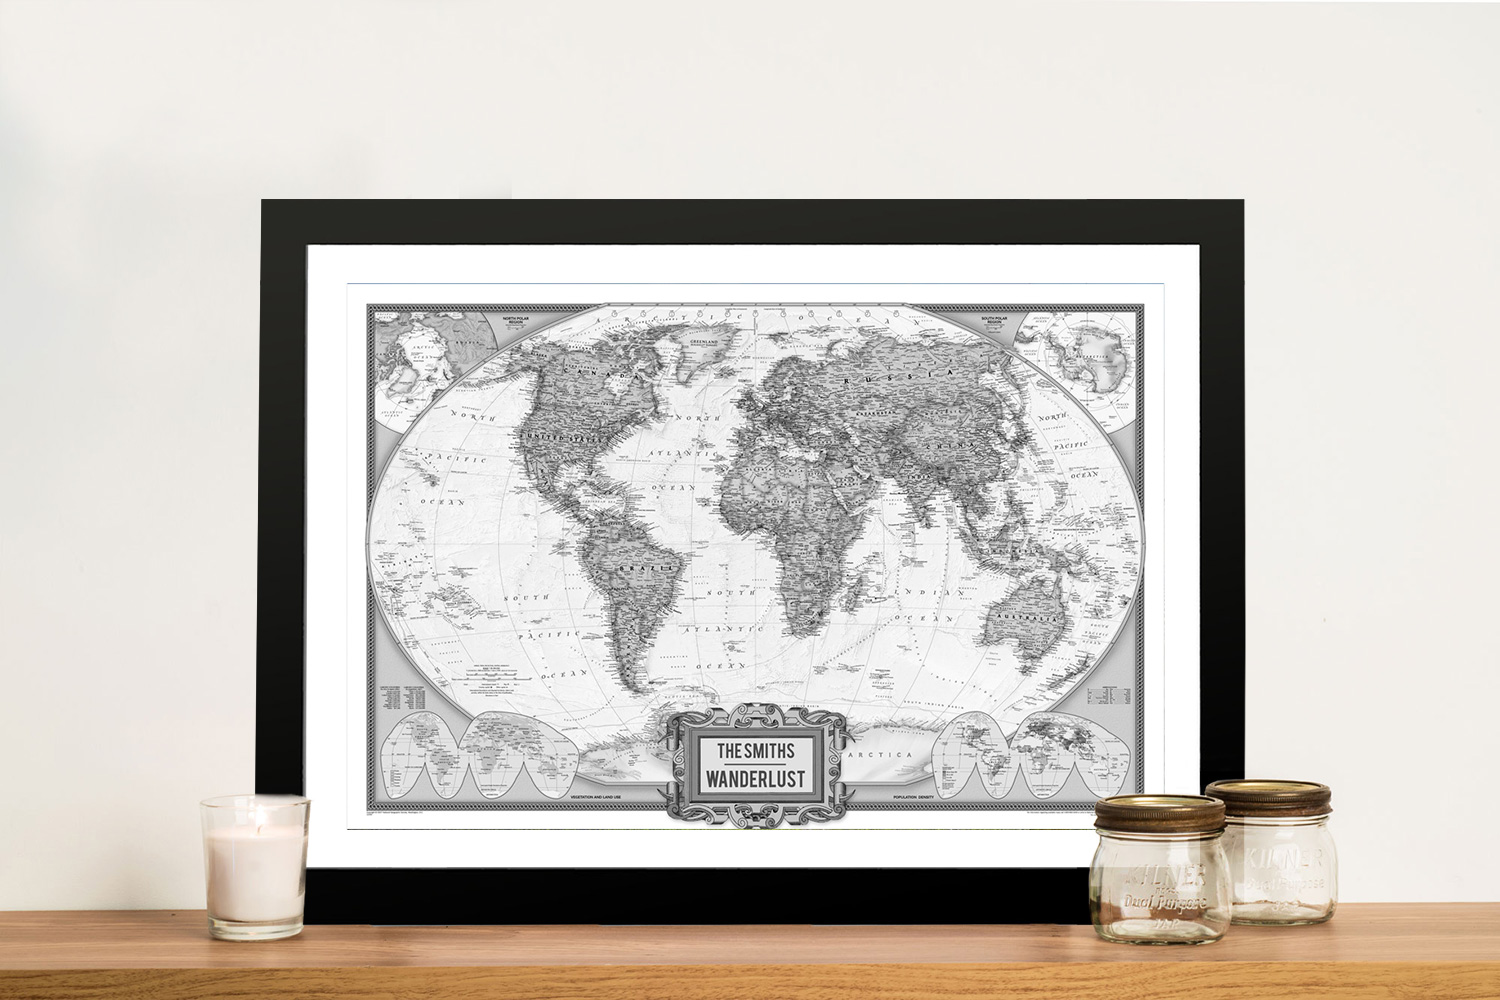 Wanderlust Black & White Push Pin Map Art | Wanderlust Push Pin World Map